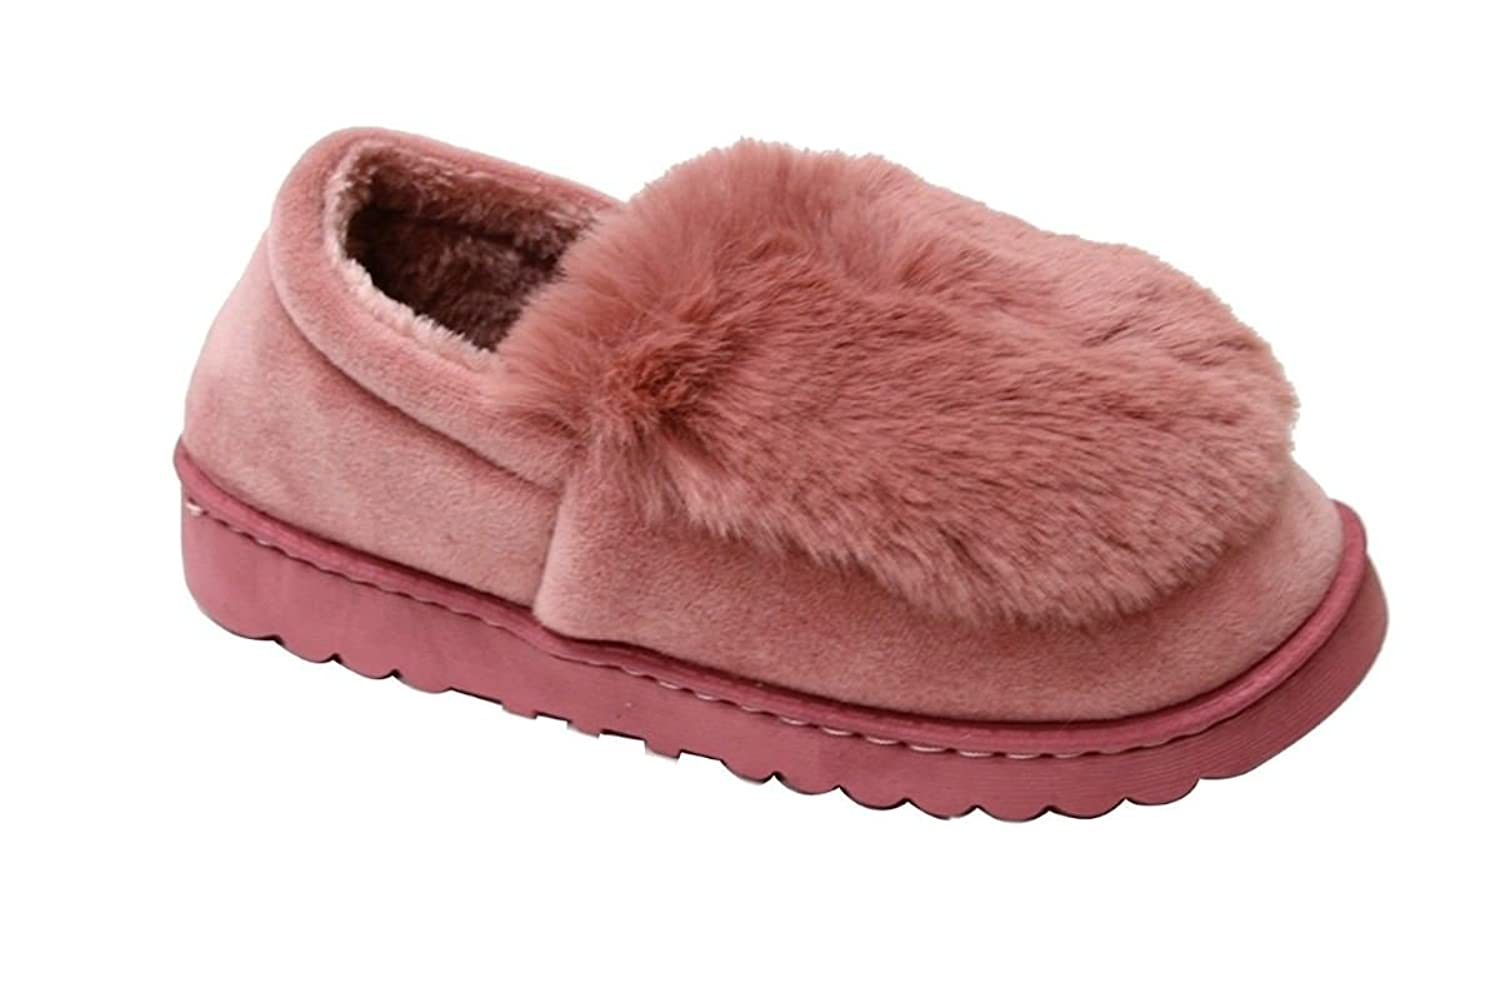 Women's Faux Sued Fur Lined Moccasion Indoor-Outdoor Slip On Mule Flexible Slipper Warm Bootie Shoes